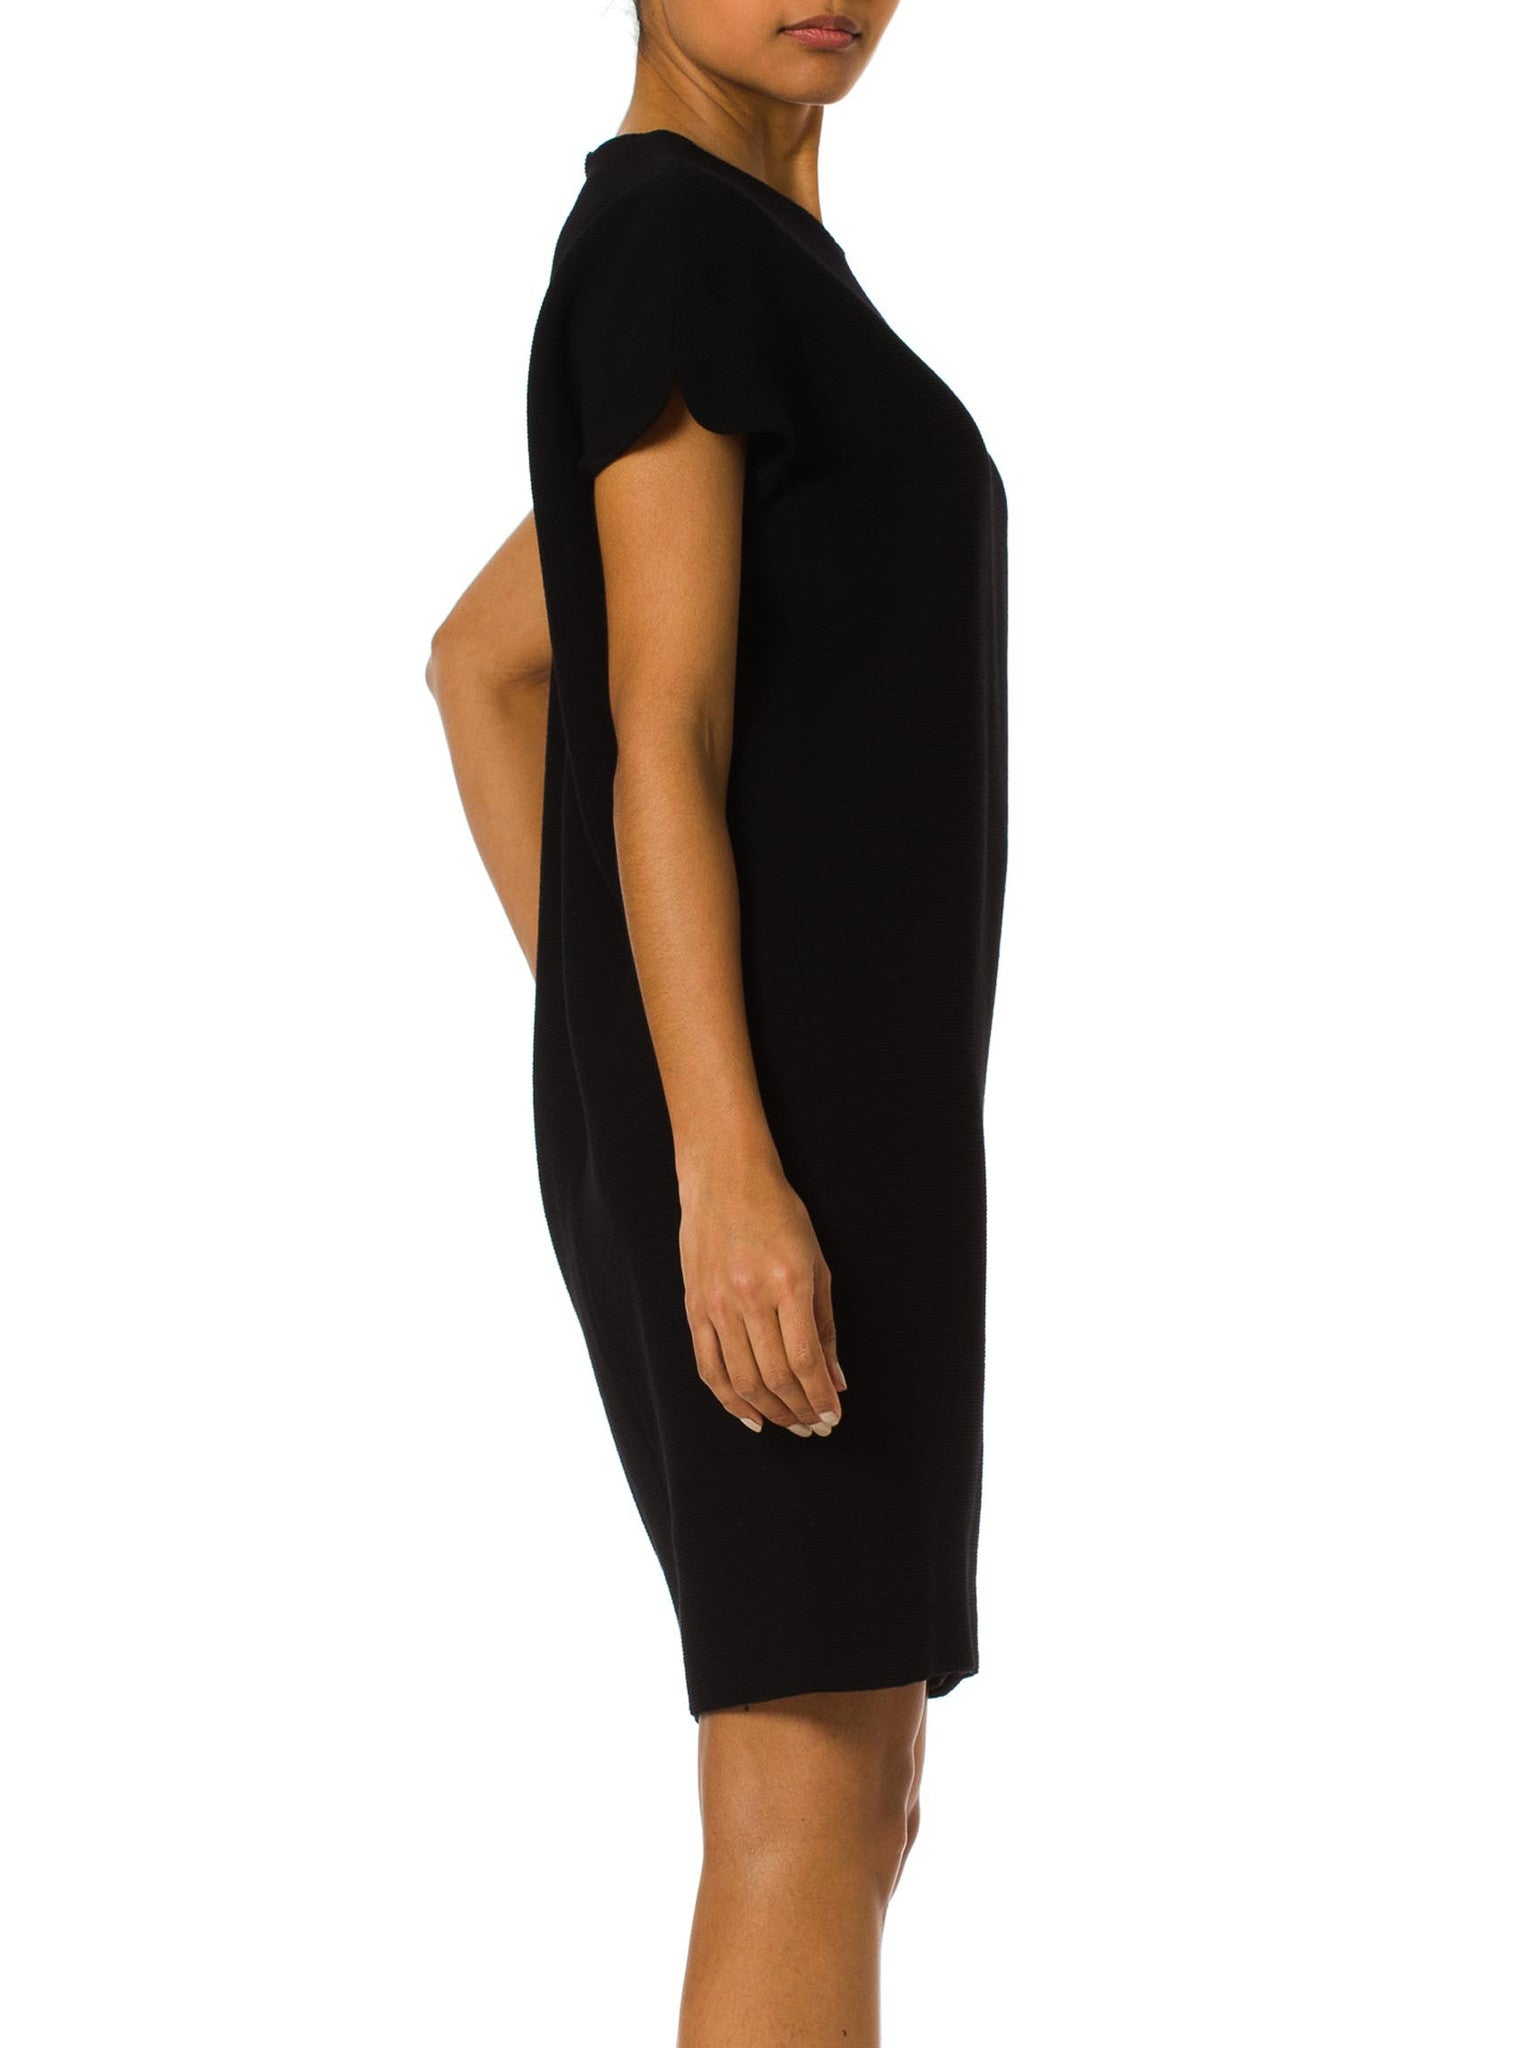 1990S GIANNI VERSACE Black Silk & Wool Crepe Ottoman Minimal Day To Night Mod Shift Dress